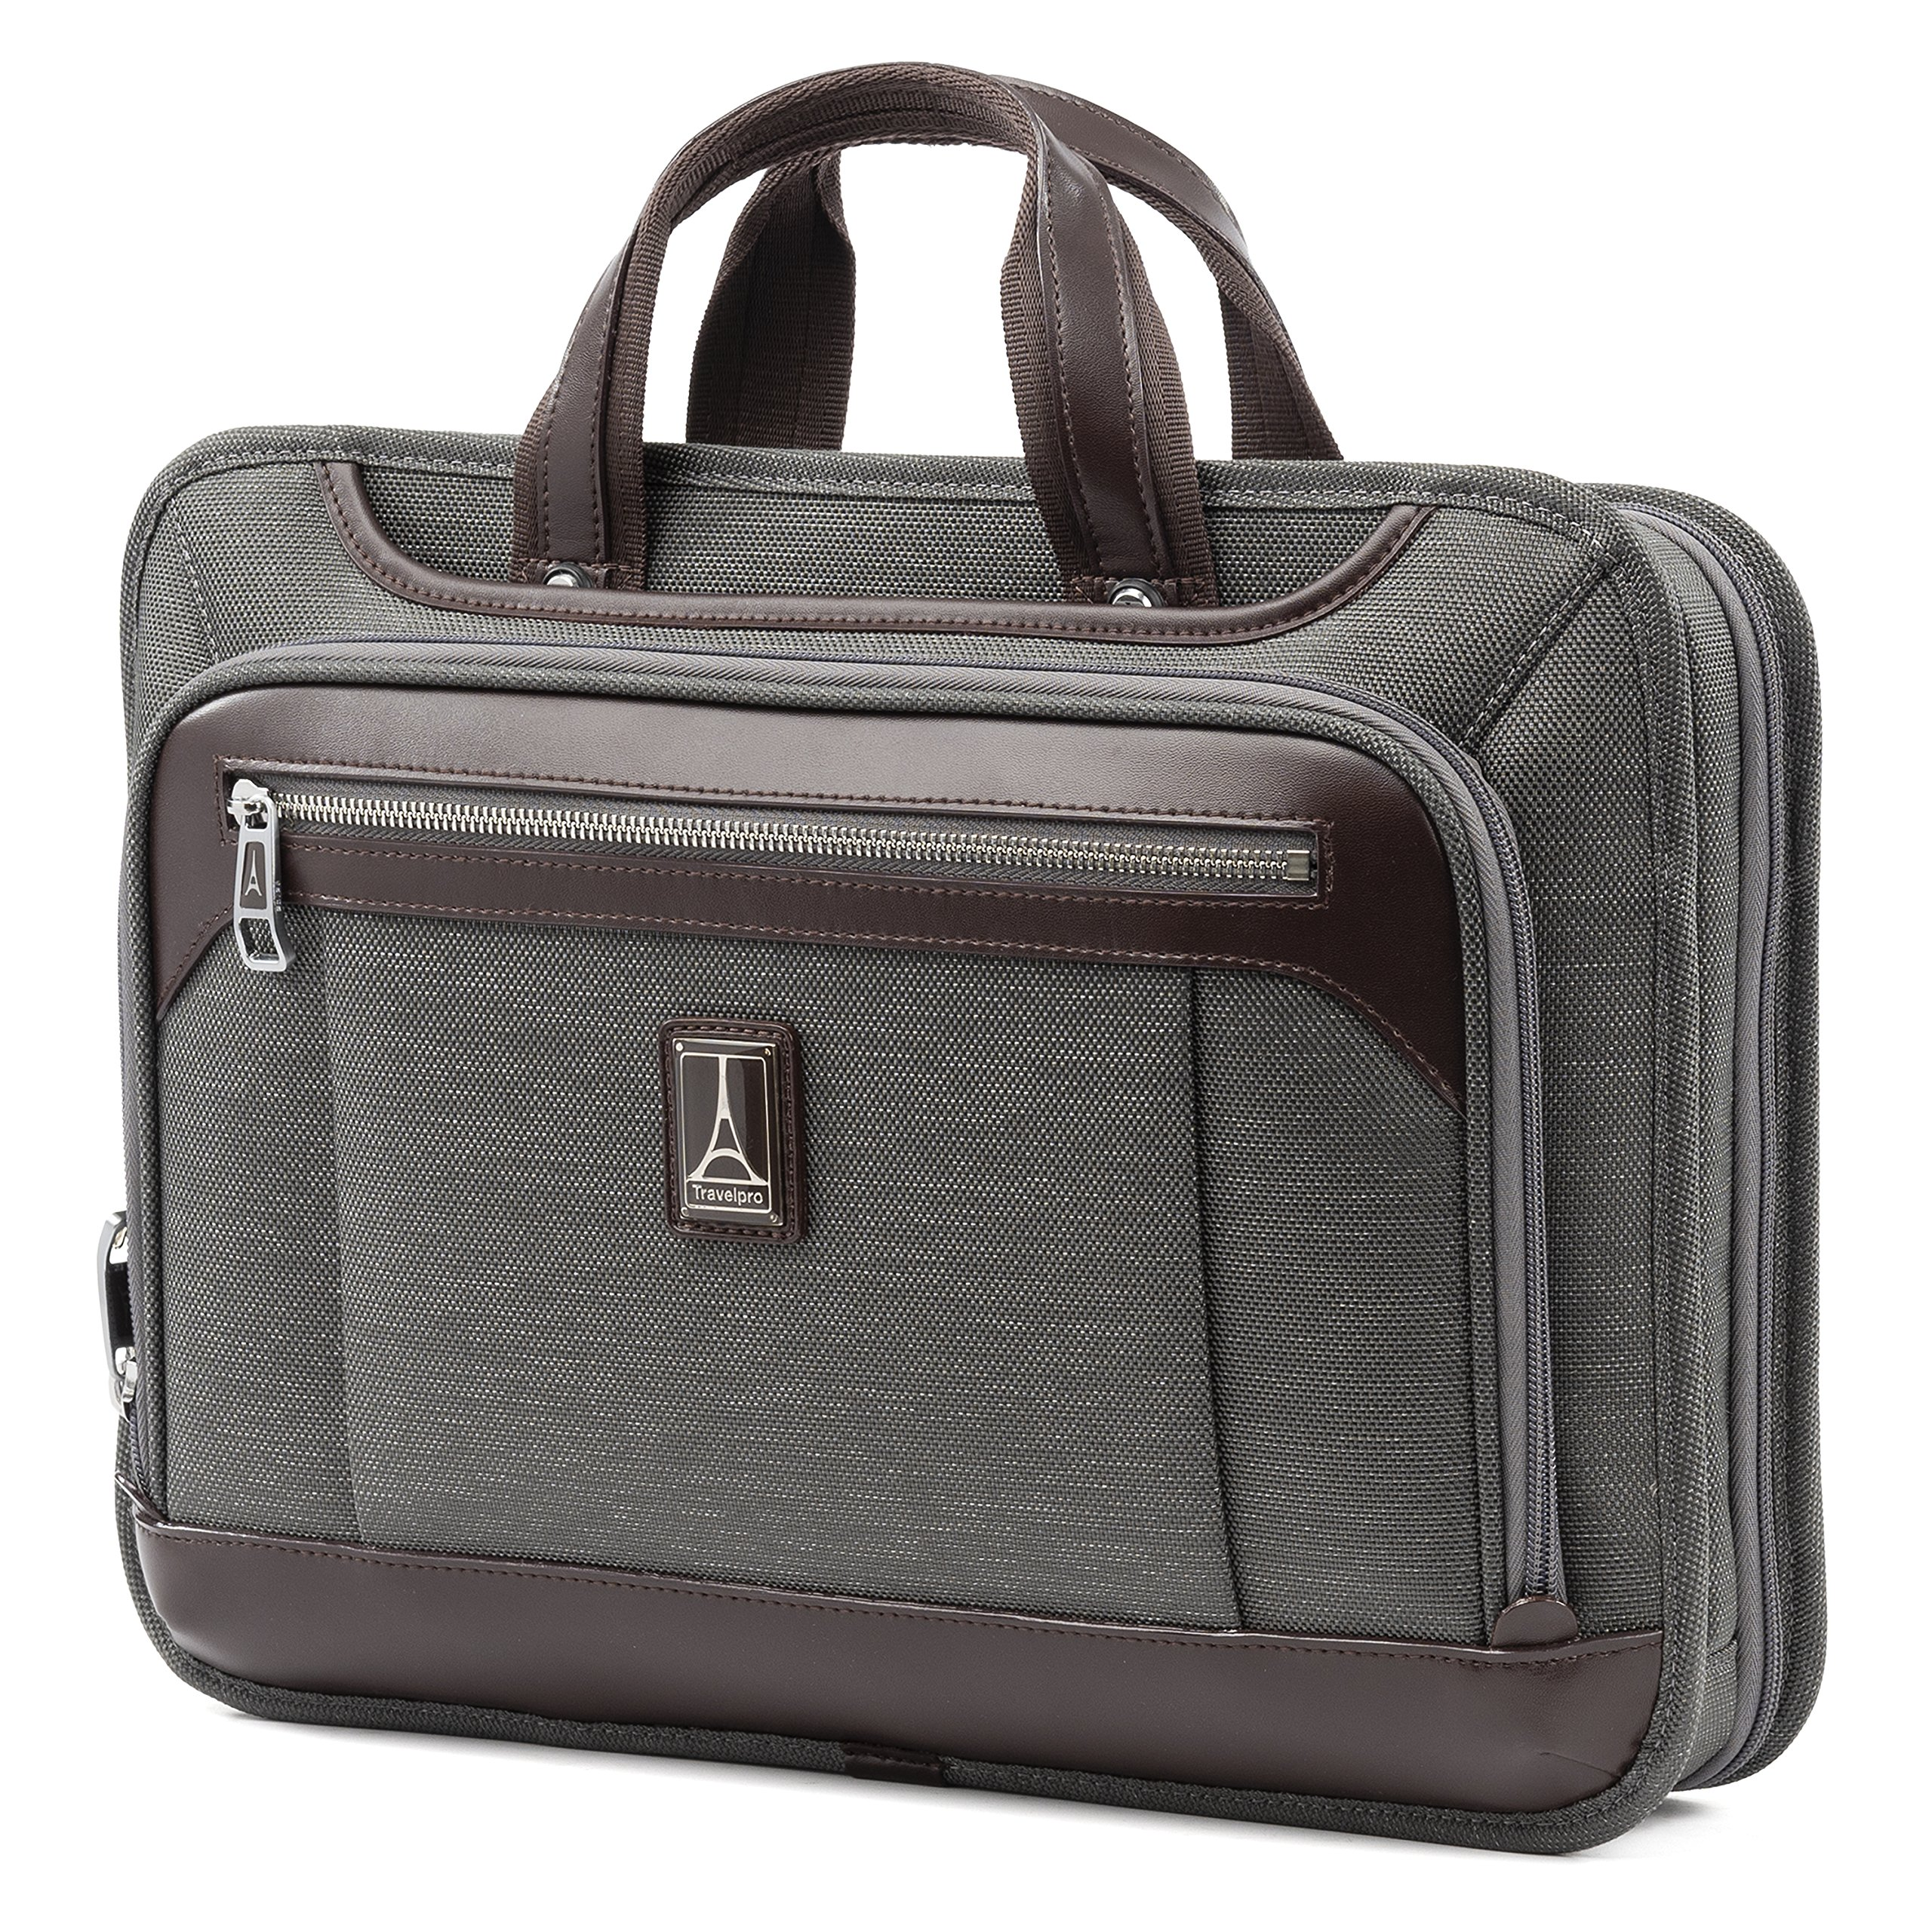 Travelpro Luggage Platinum Elite 16'' Carry-on Slim Business Computer Briefcase, Vintage Grey, One Size